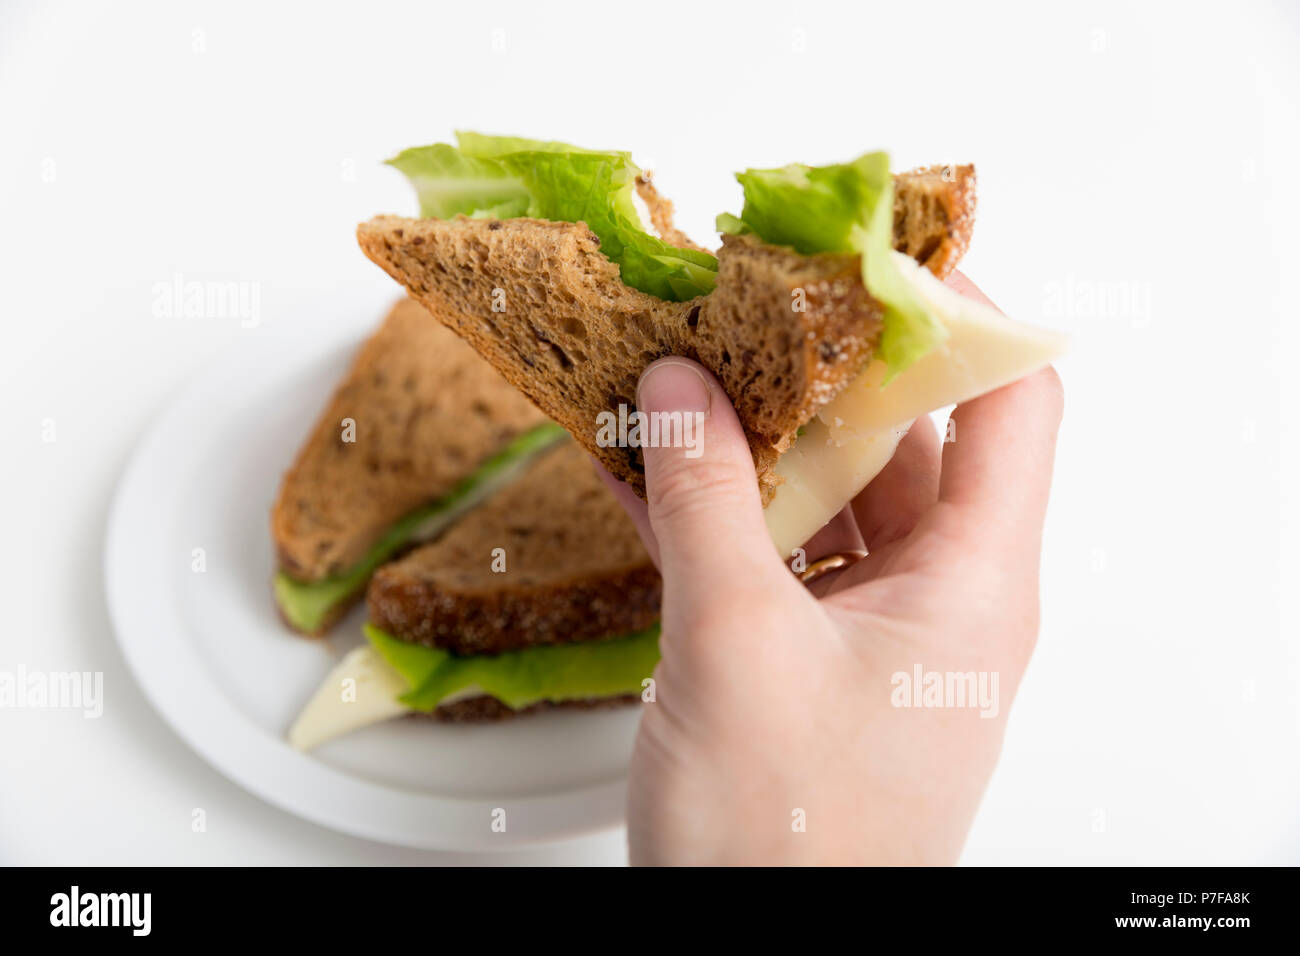 Bitten Cheese And Lettuce Sandwich In Hand Whole Sandwich On White Plate Lunch Break Healthy Snack Concept Stock Photo Alamy